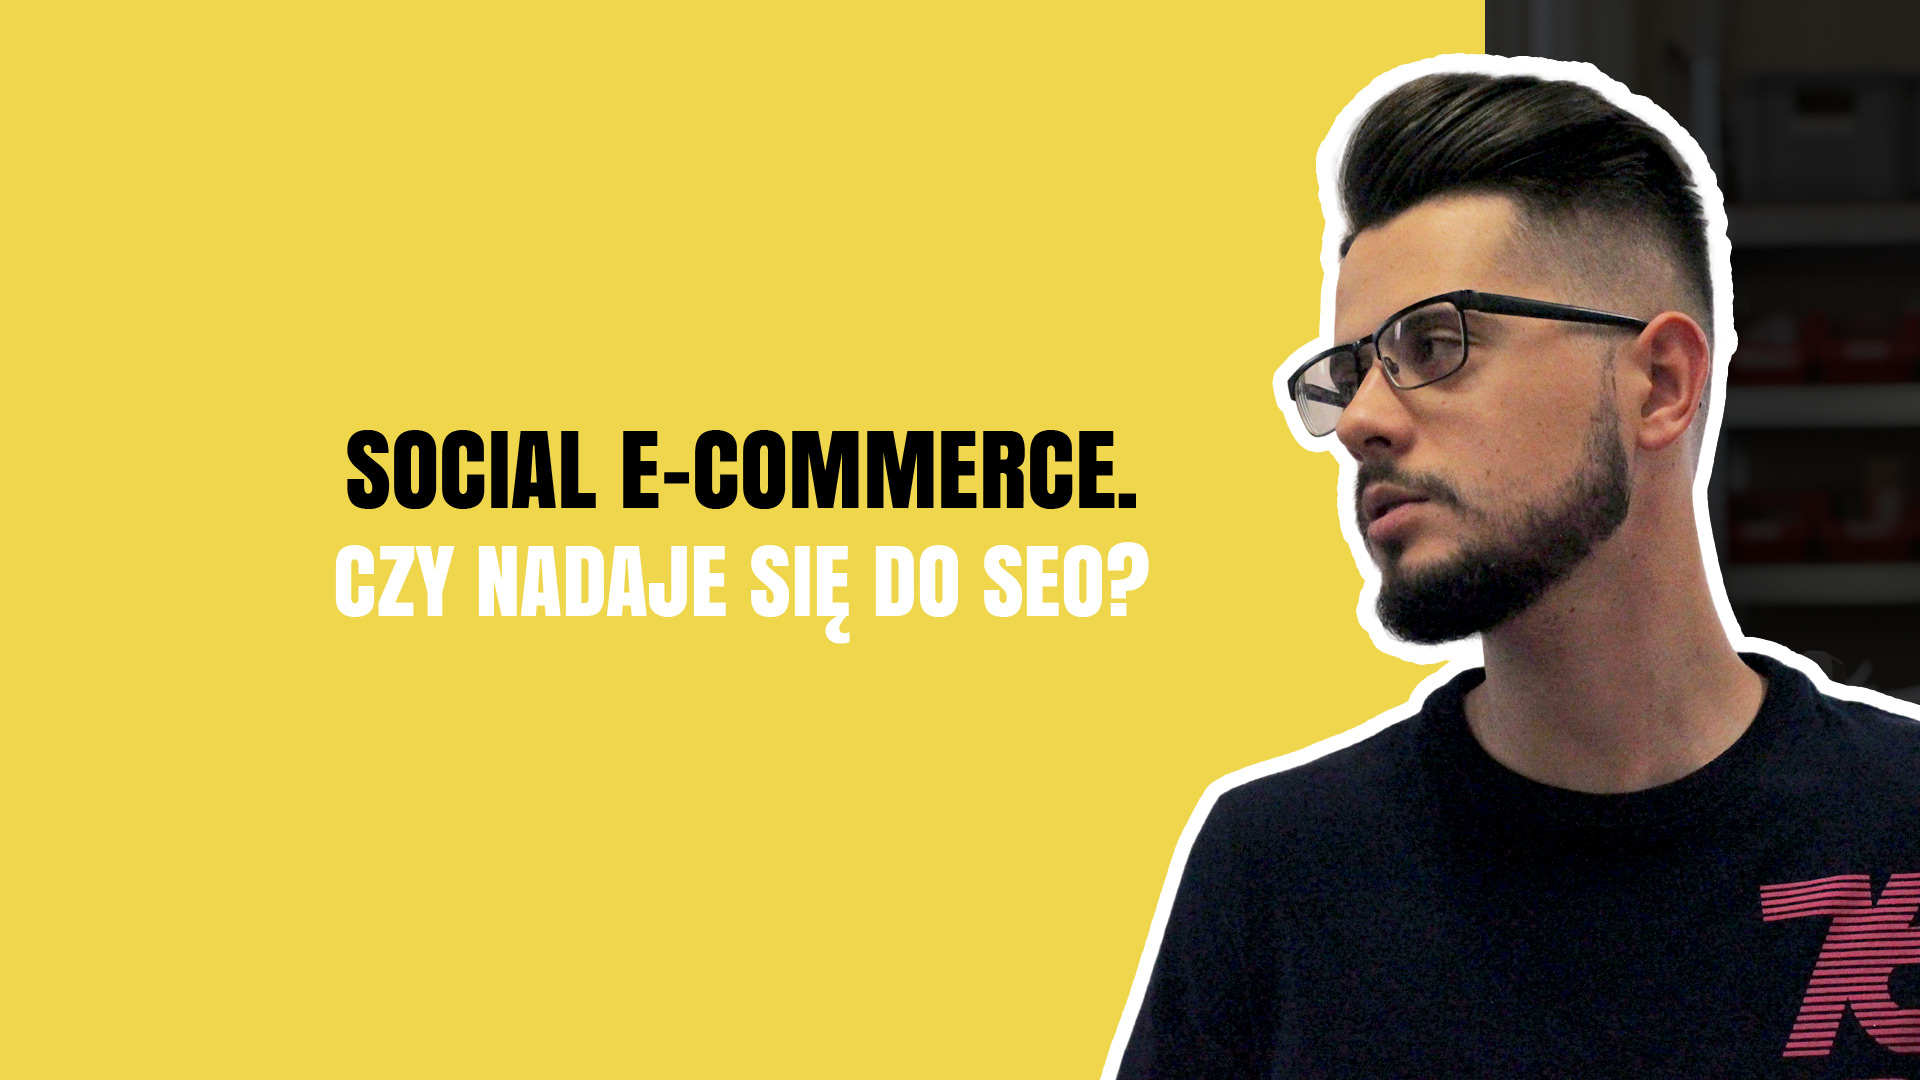 Social e-commerce